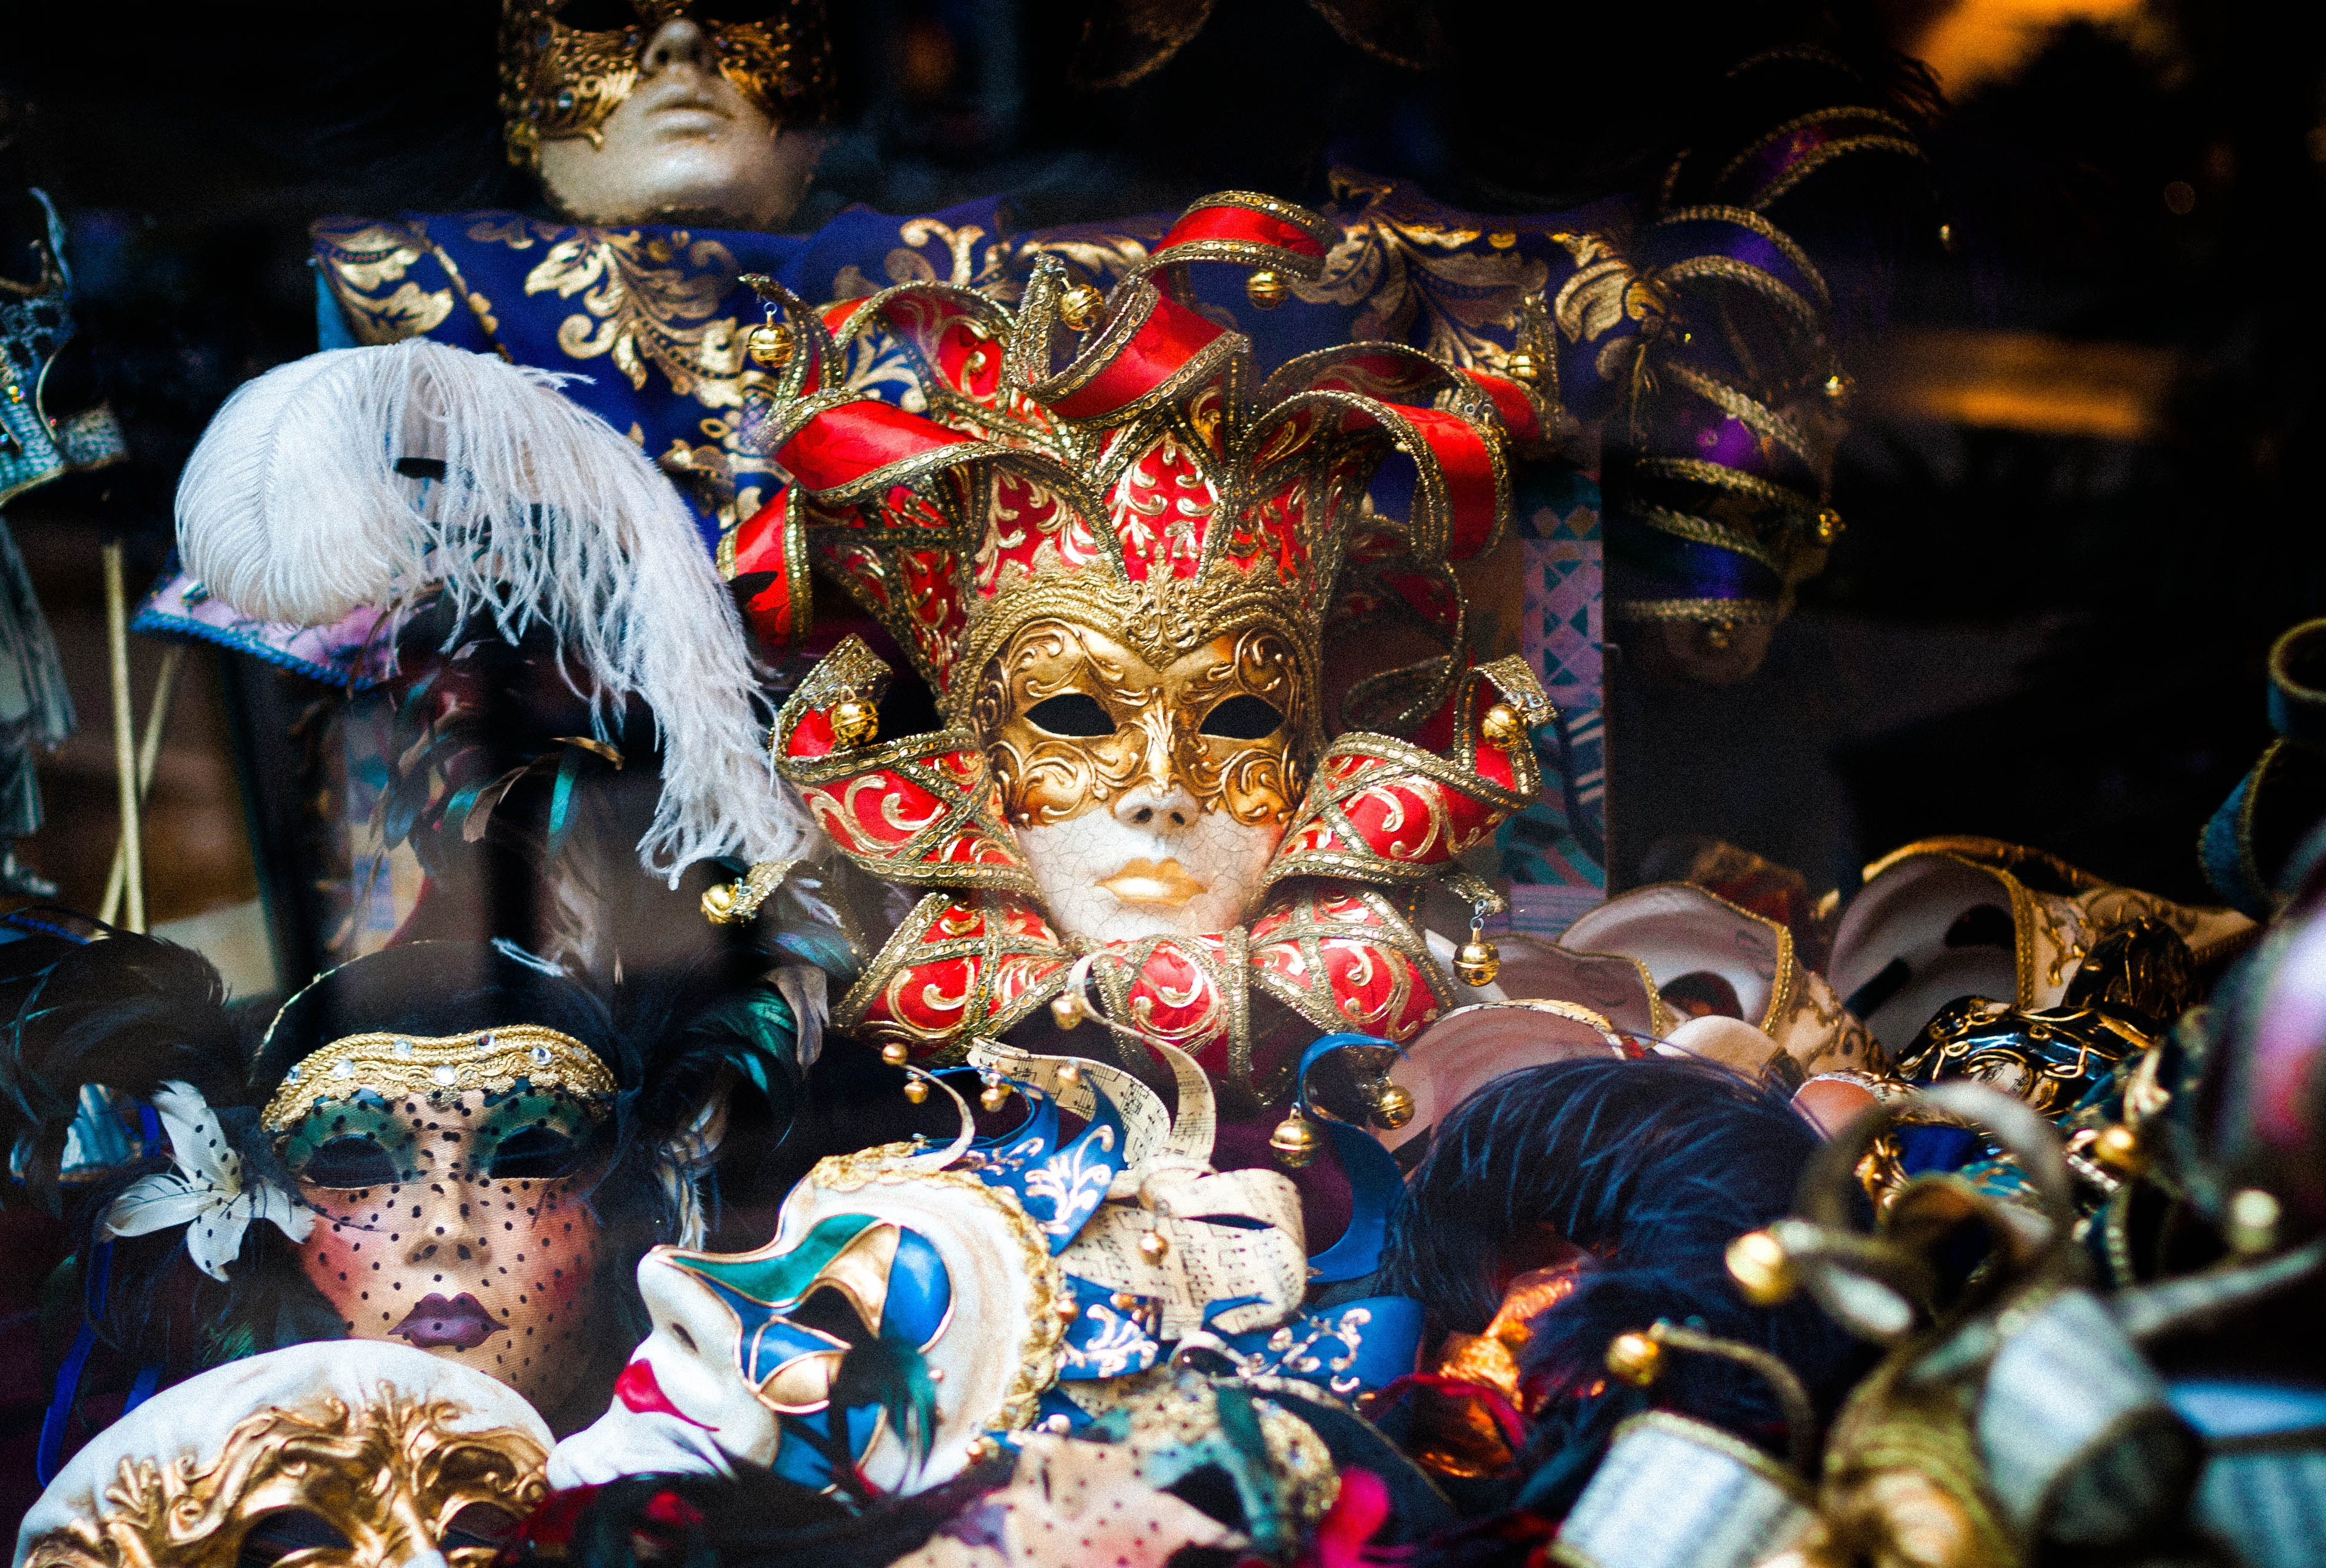 The Power, Celebration, and Protection of Masks Throughout History